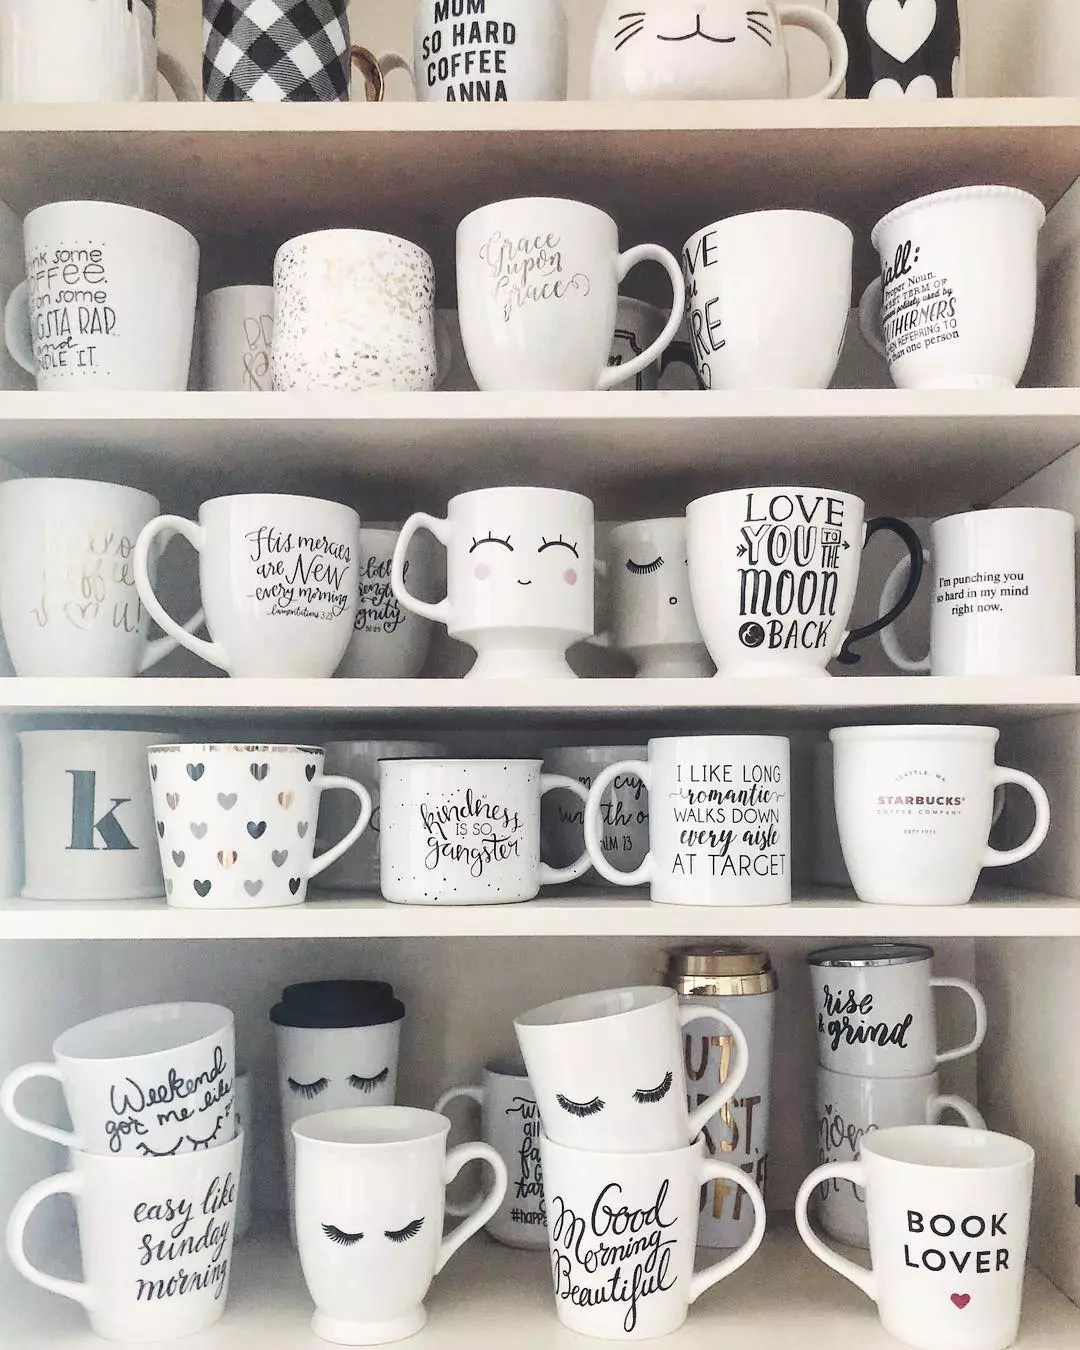 Kitchen Cupboard Filled with Dozens of Coffee Mugs. Photo by Instagram user @kayla_made